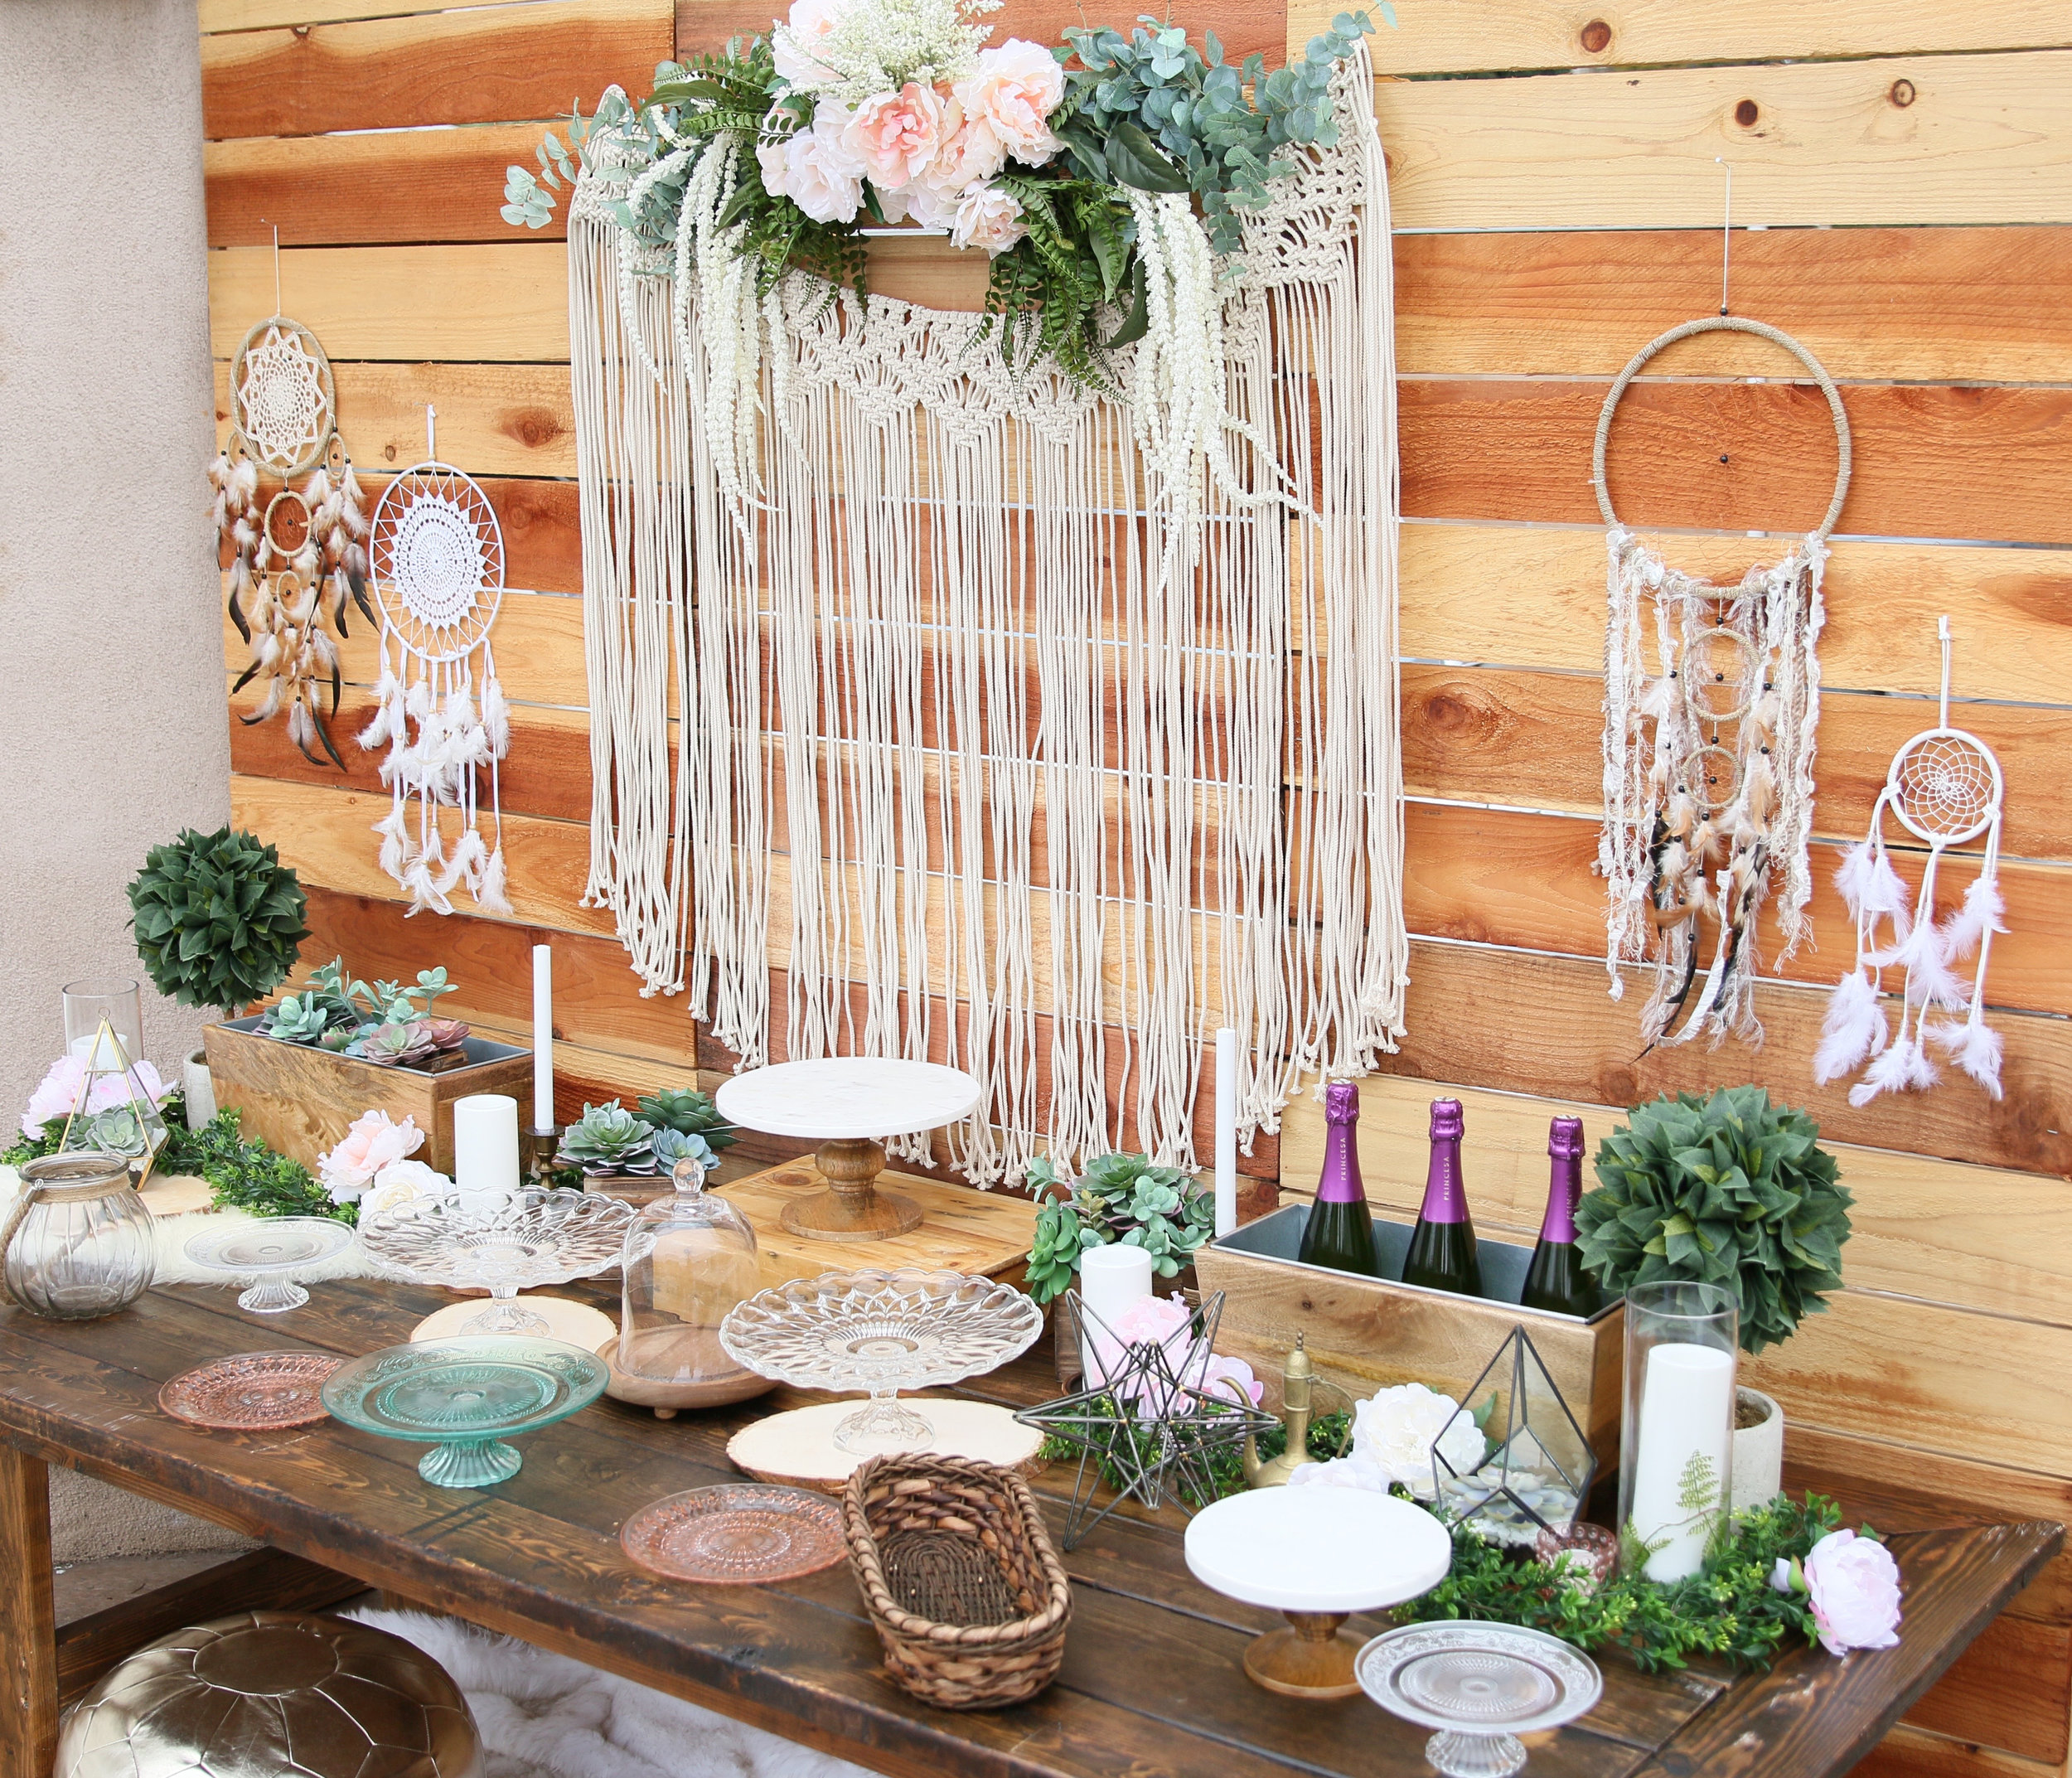 Copy of A gorgeous pre-curated rental collection with succulents, pops of blush, dreamcatchers, and rustic wood accents. Make it yours for your next baby or bridal shower! @inJOYtheParty